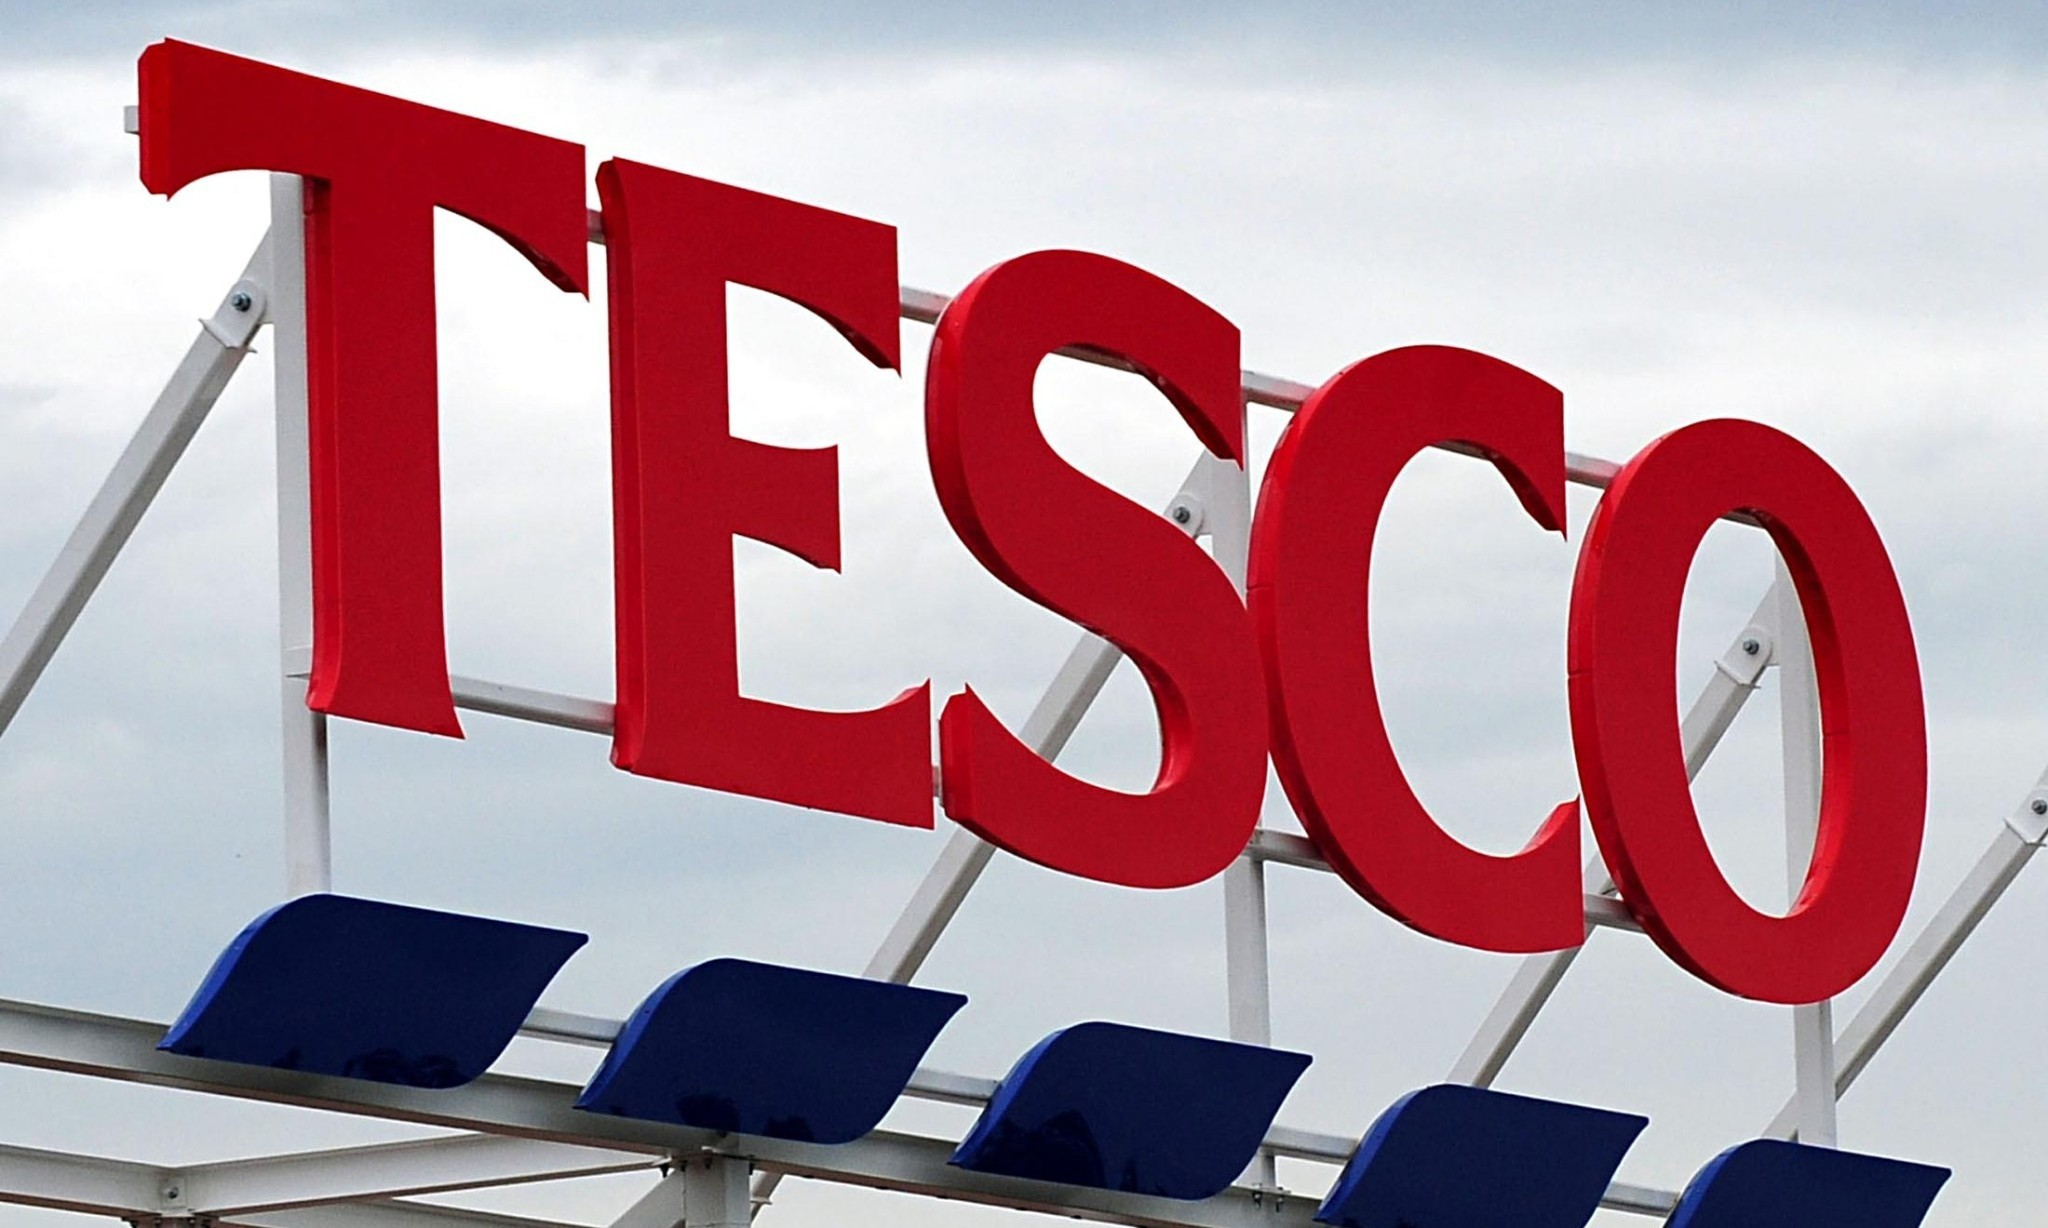 Tesco ditches plans to build huge superstore on Margate seafront